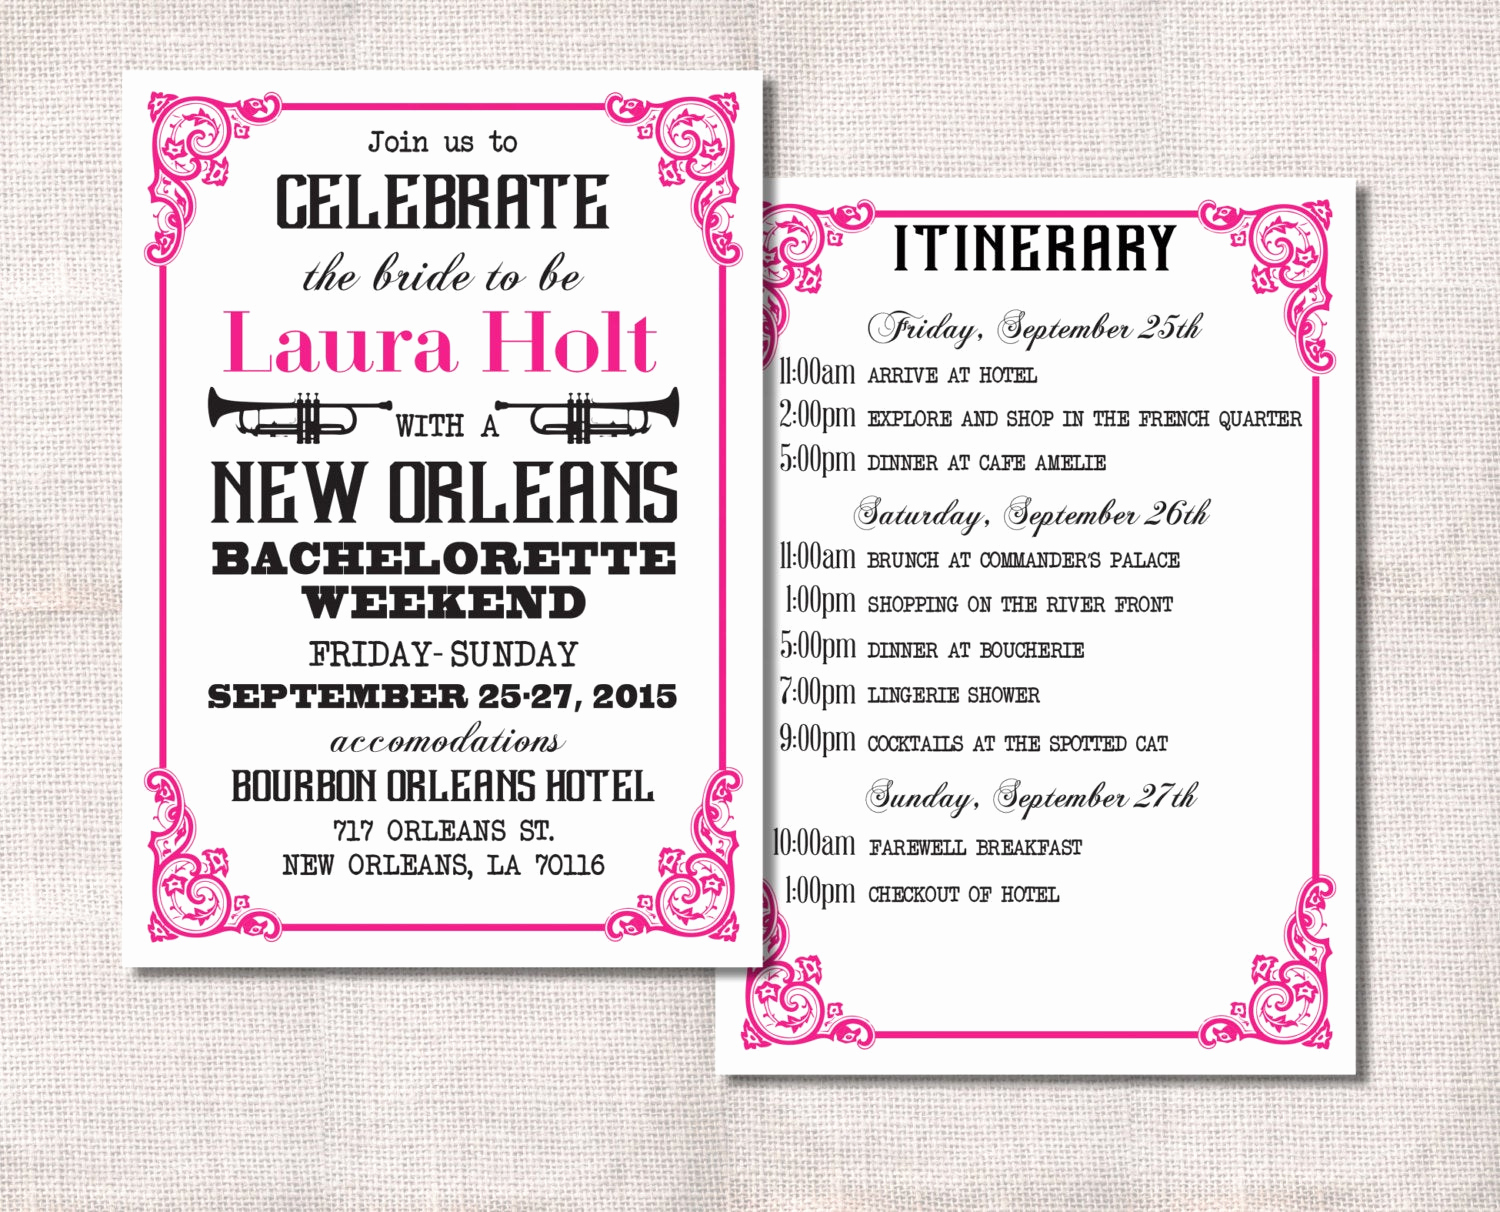 Bachelorette Party Itinerary Template Inspirational Bachelorette Party Weekend Invitation and Itinerary Custom